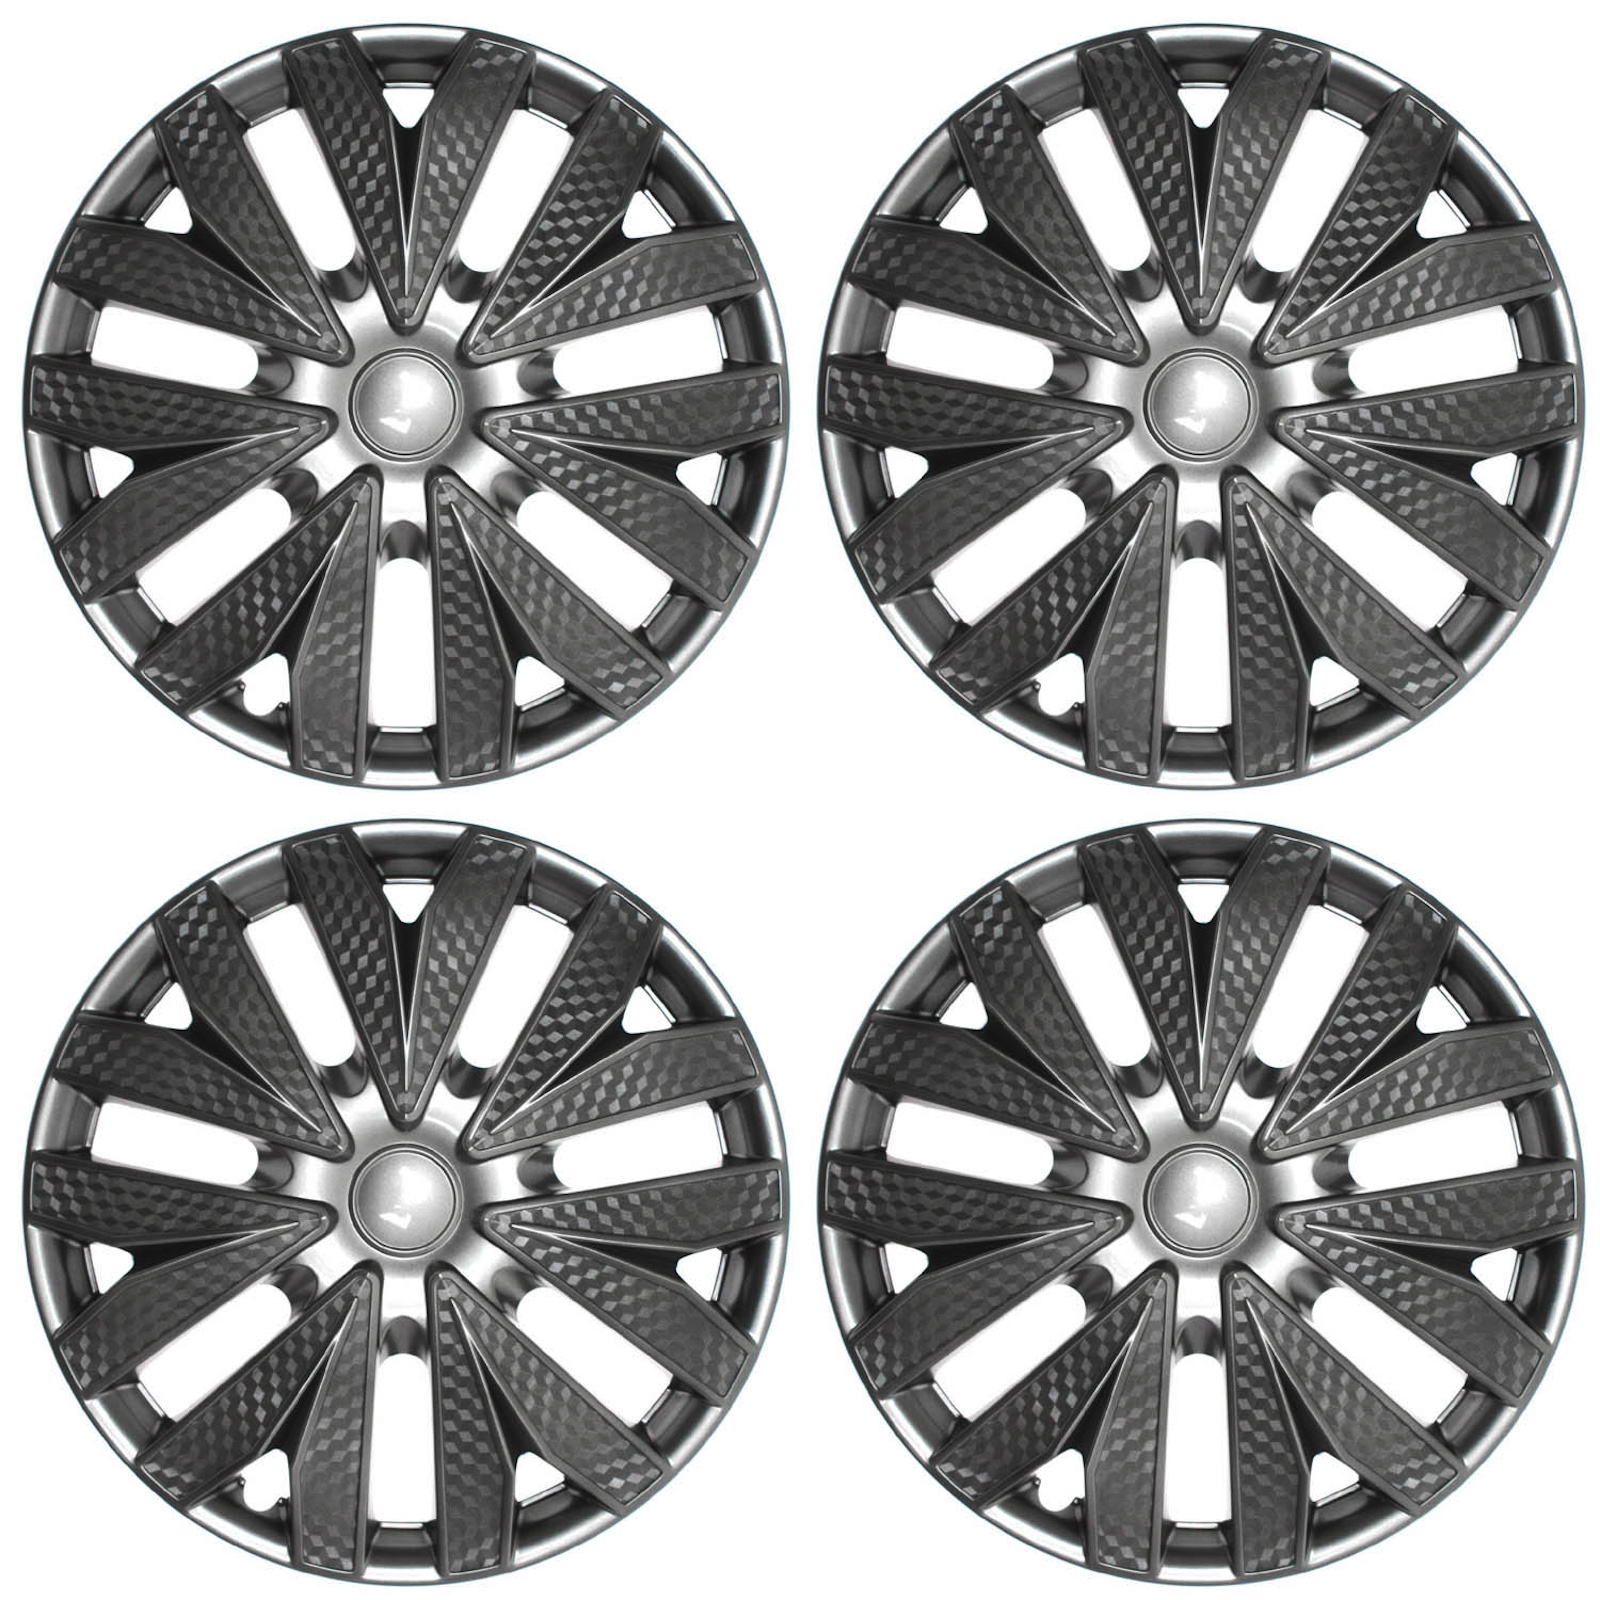 hight resolution of 4pc hub cap carbon fiber gray gunmetal charcoal silver 15 wheel cover caps